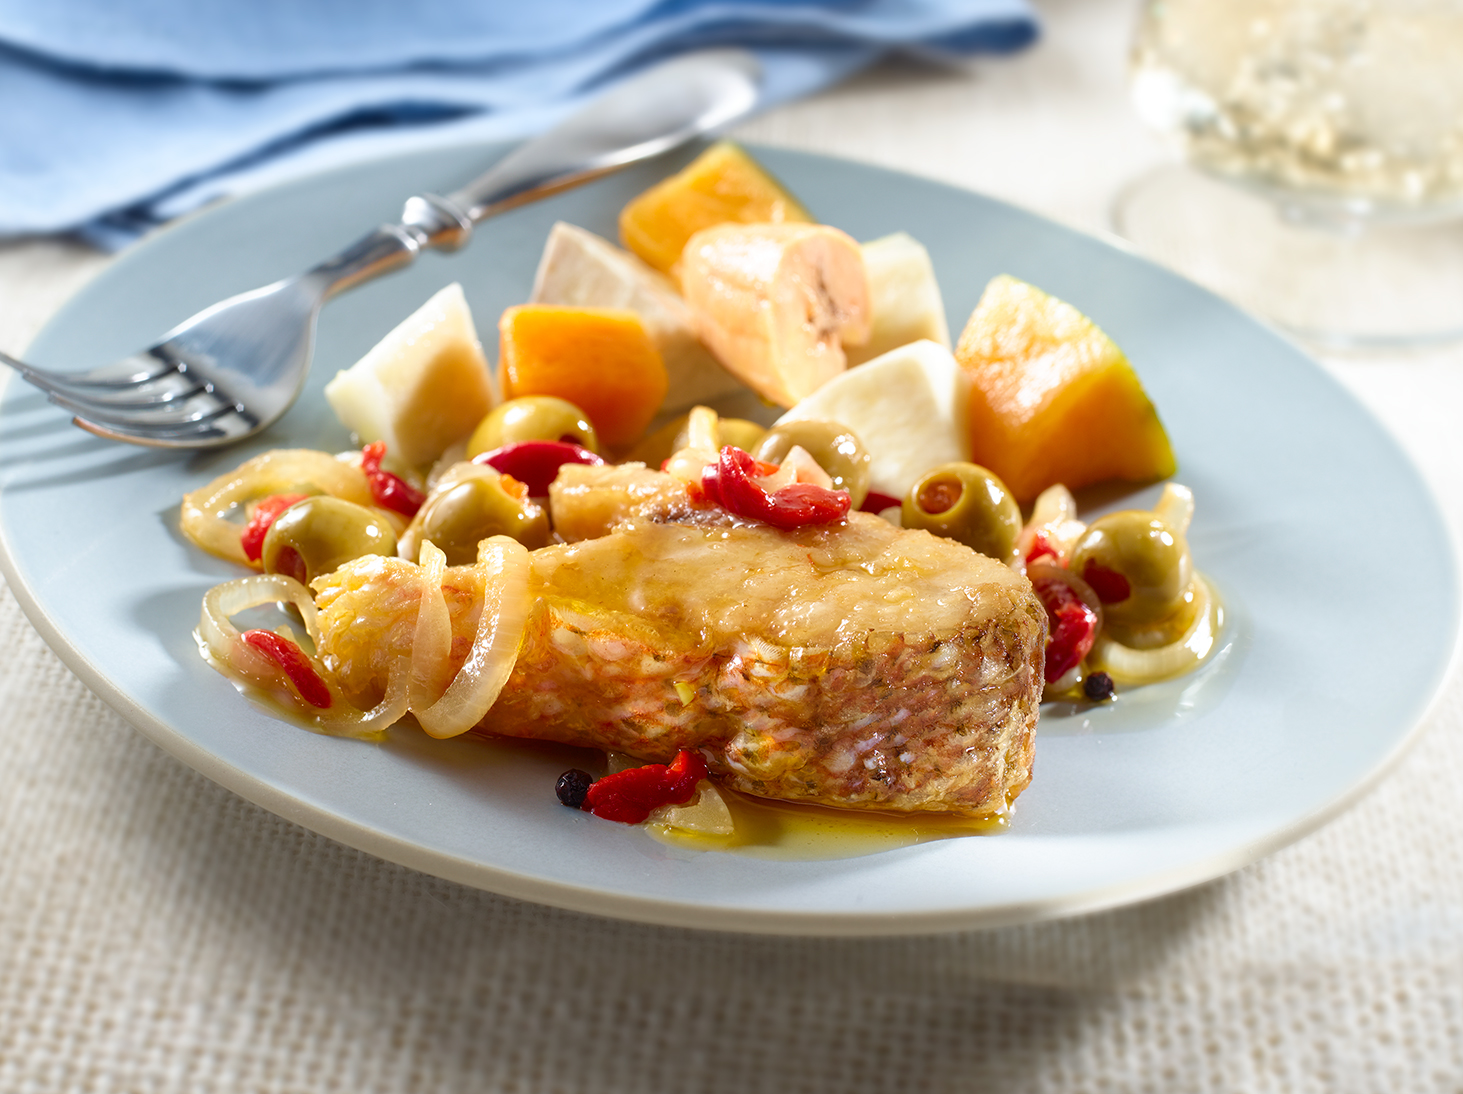 Escabeche de Pescado - Marinated Fish